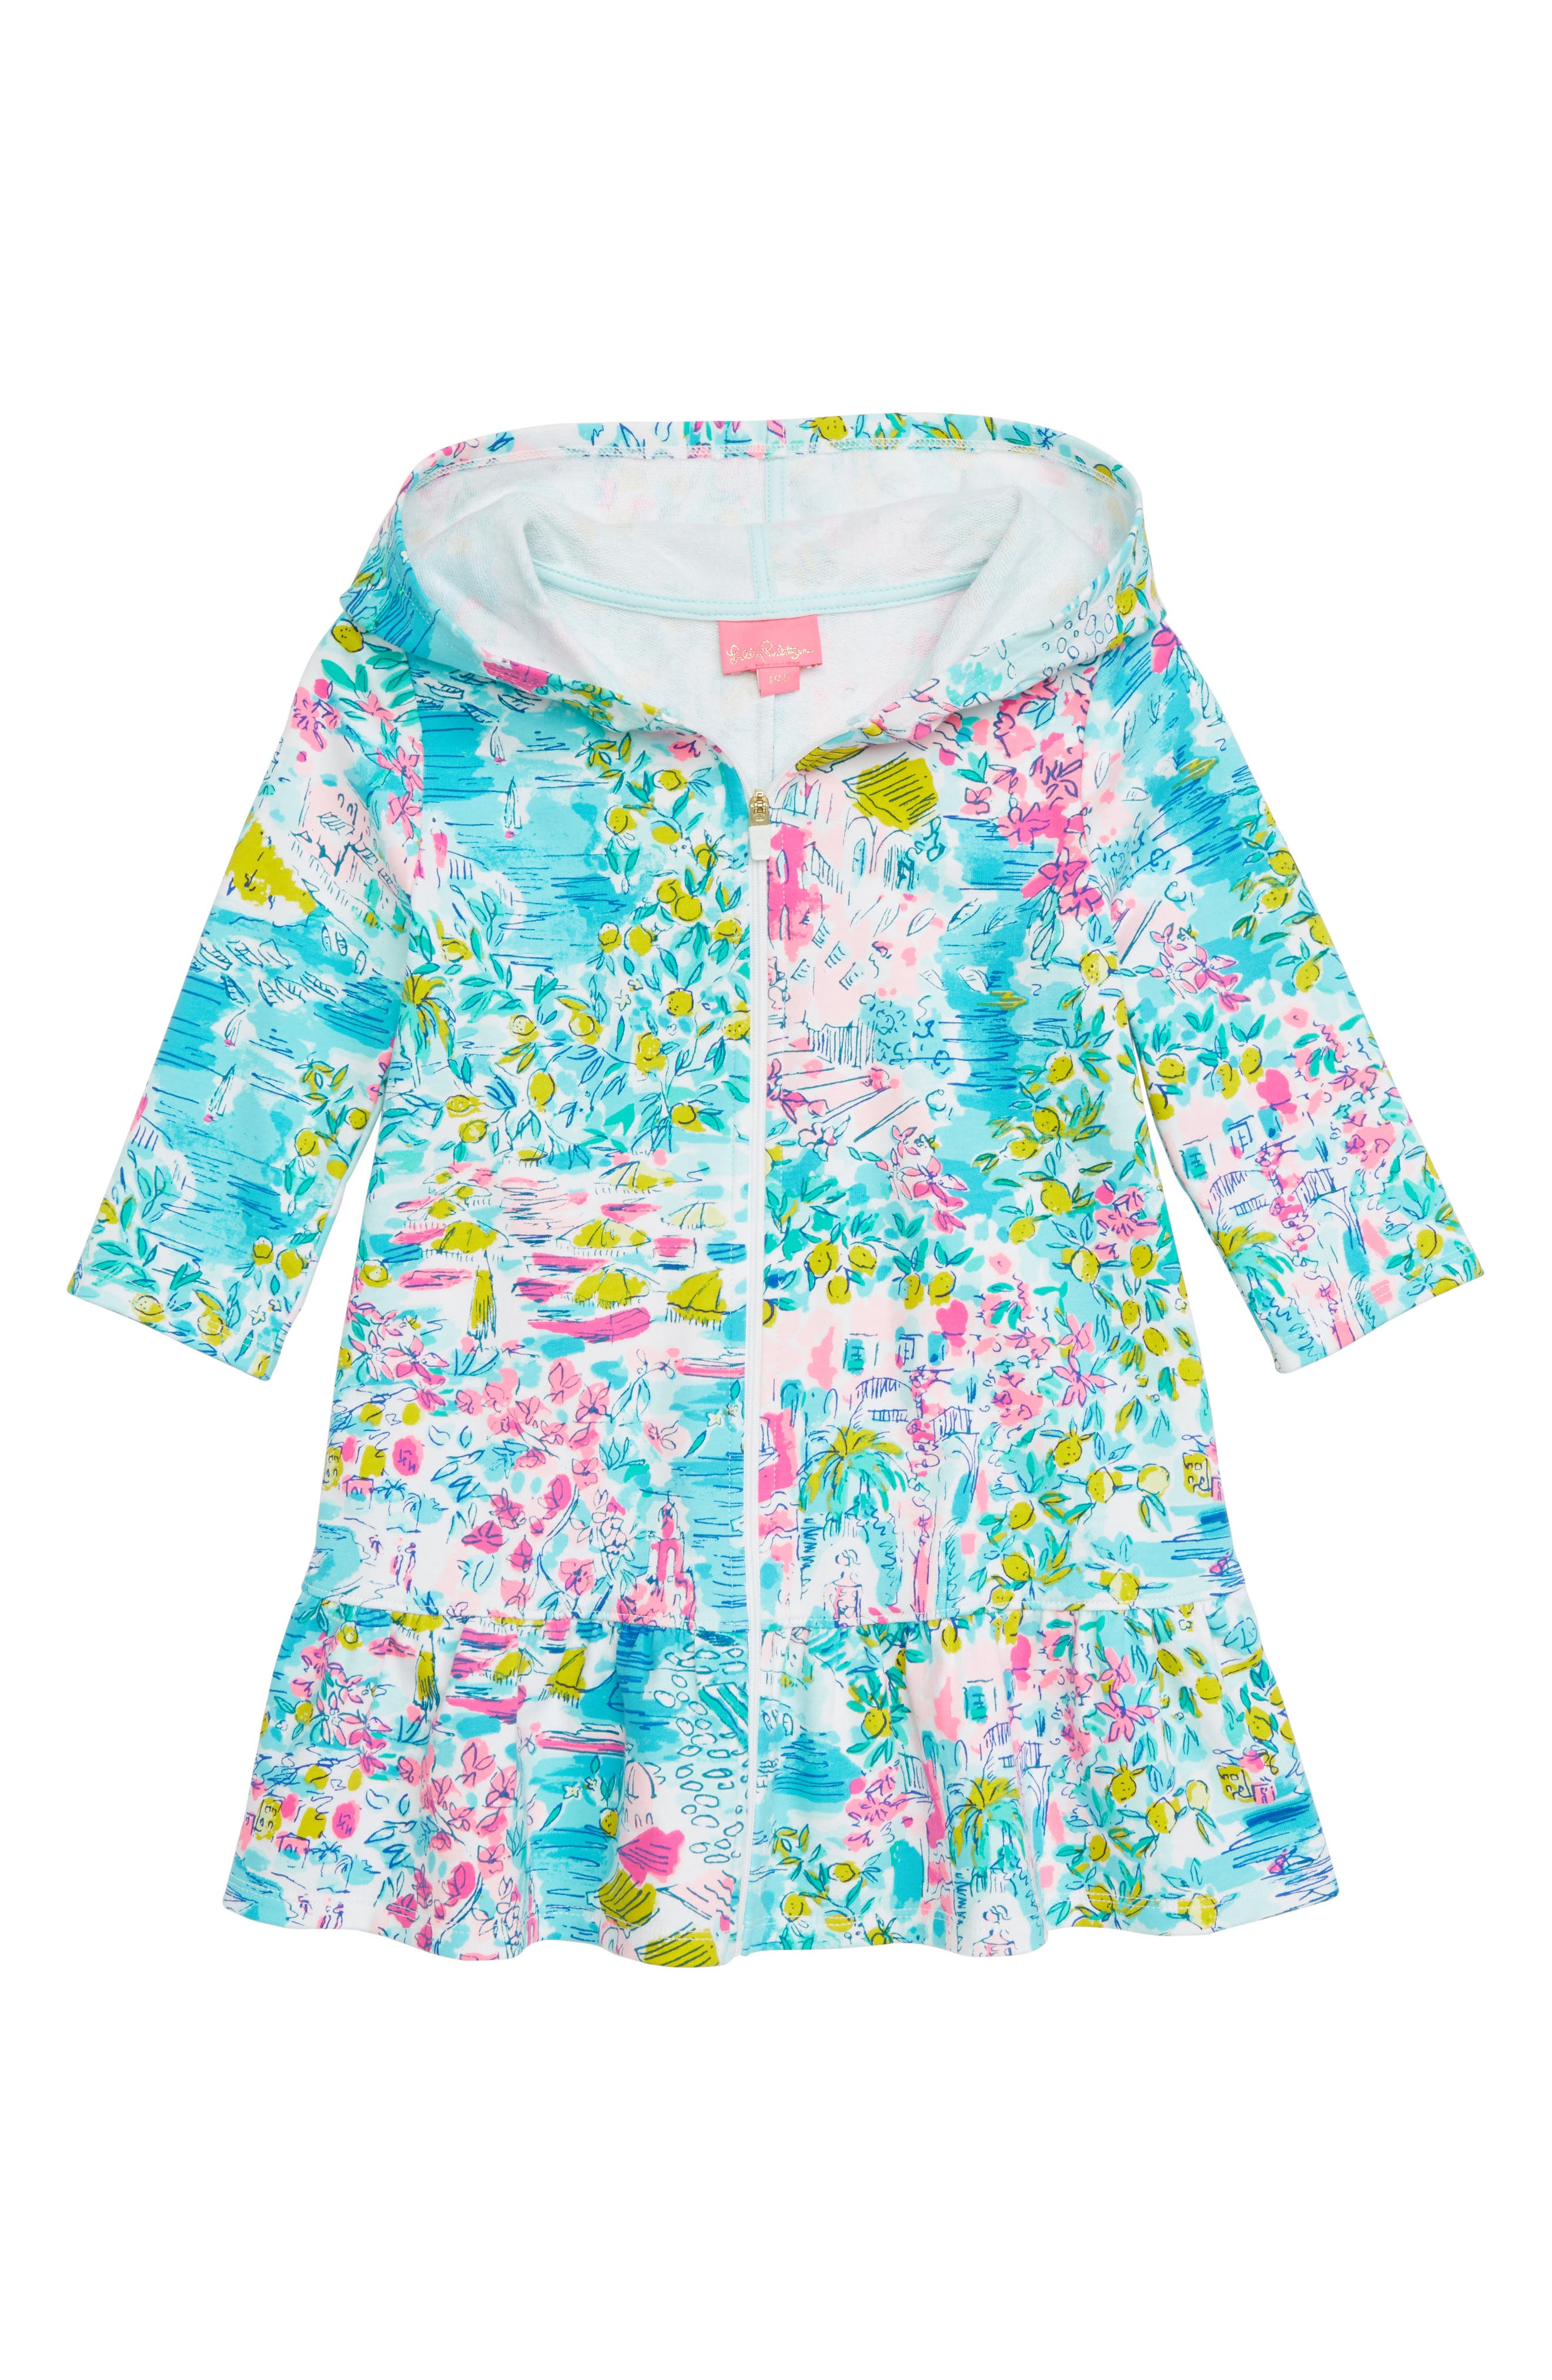 Cooke Hooded Cover-Up Dress,                             Main thumbnail 1, color,                             MULTI POSTCARDS FROM POSITANO